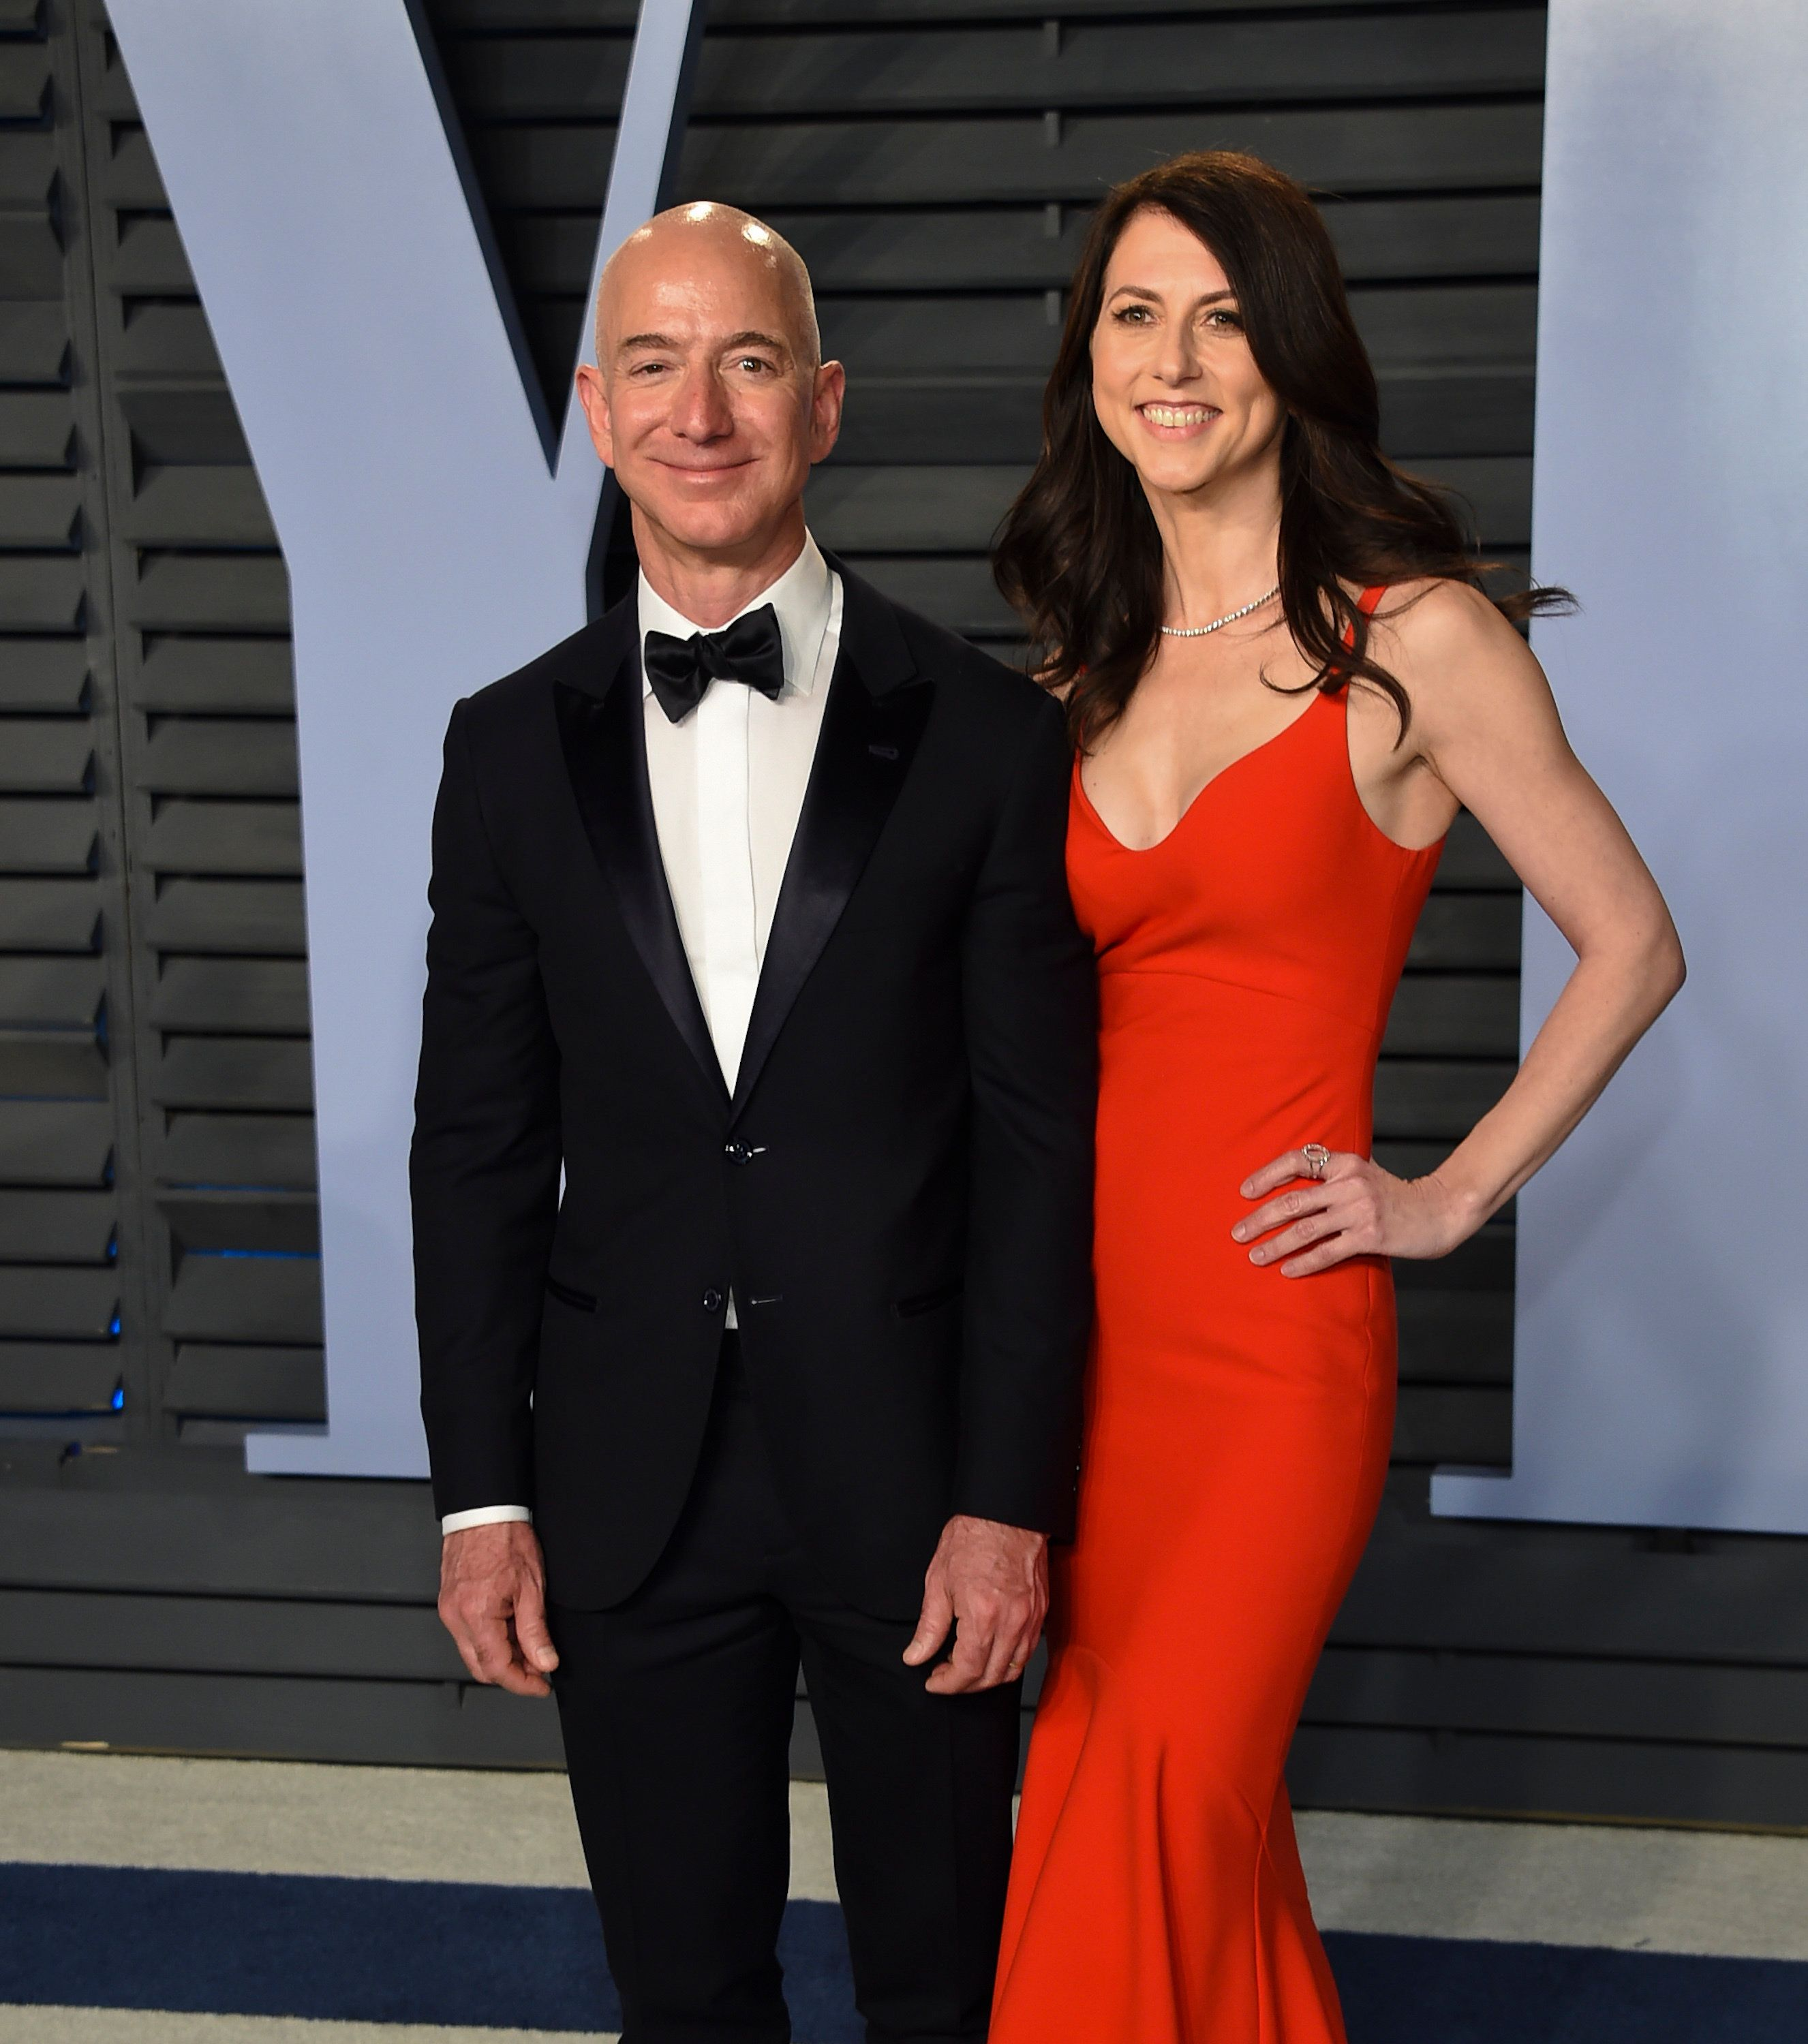 How Much Could Wife of Amazon's Jeff Bezos Get in Divorce?